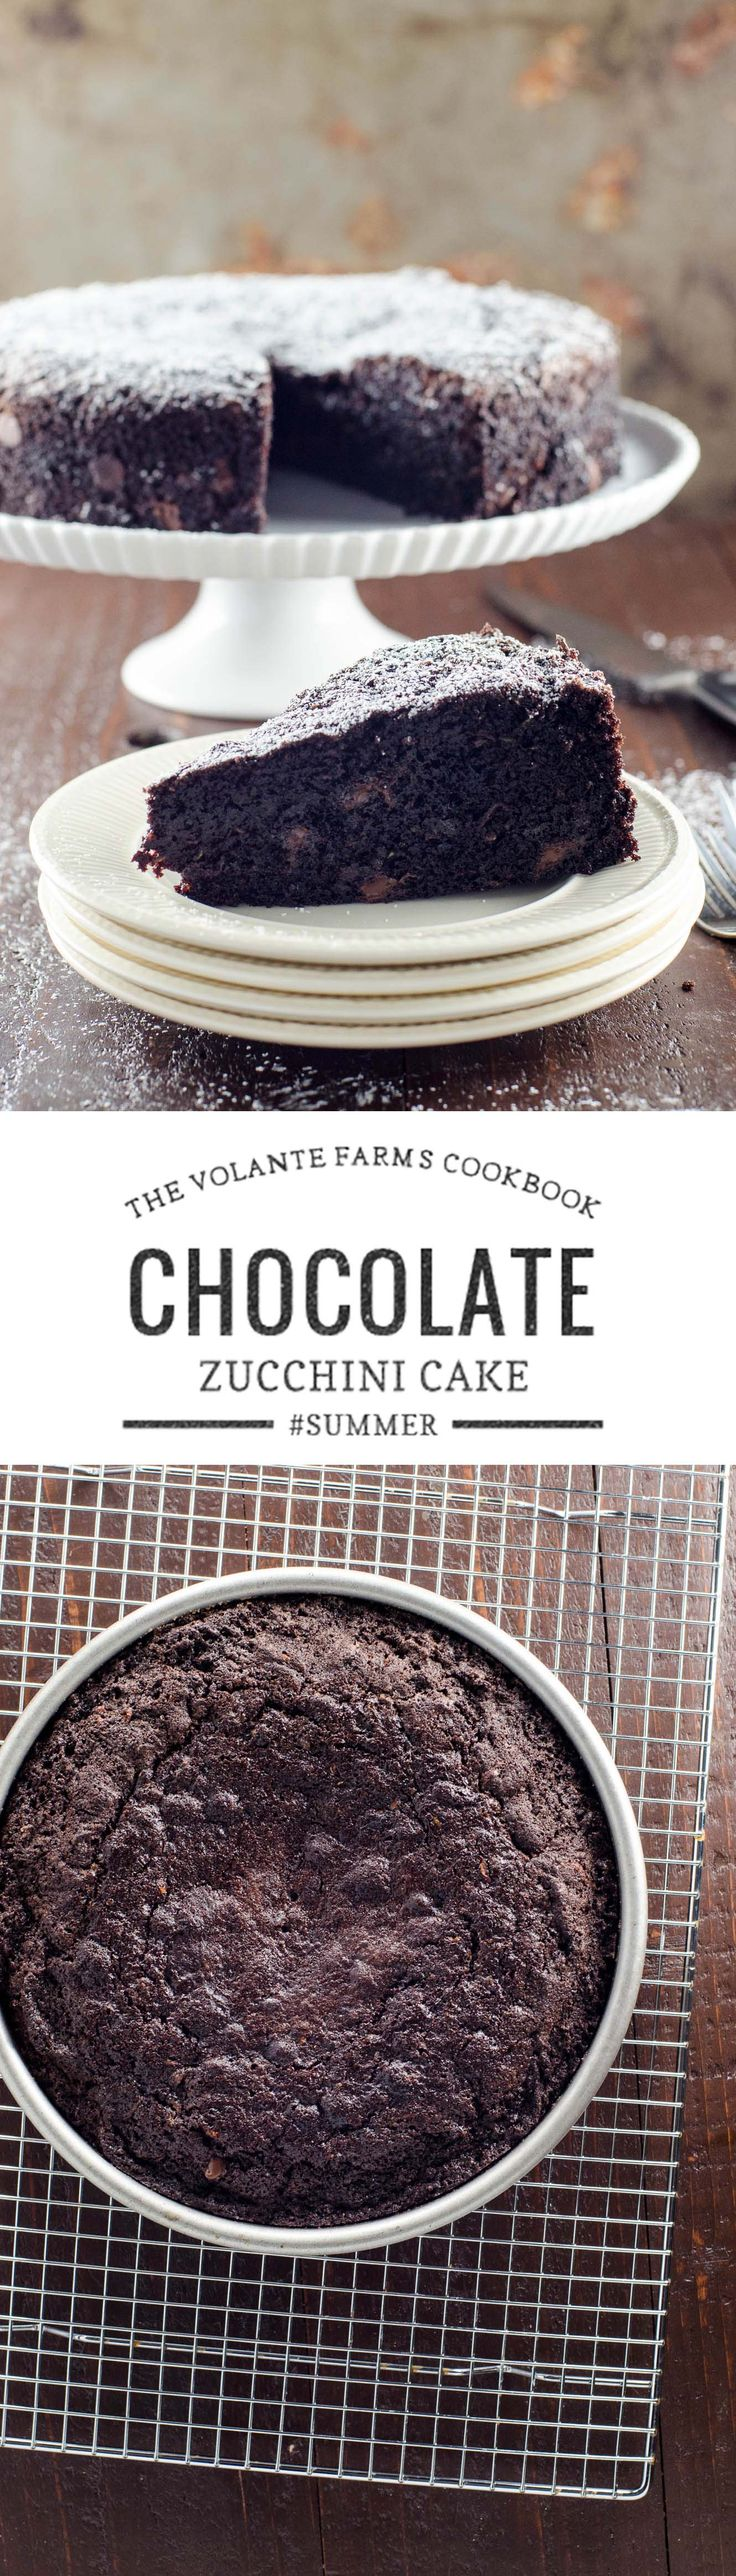 This wonderful, unfussy chocolate zucchini cake is adapted from The Volante Farms cookbook, celebrating the market of the same name in Needham, MA. via @umamigirl (Bread Baking Tools)